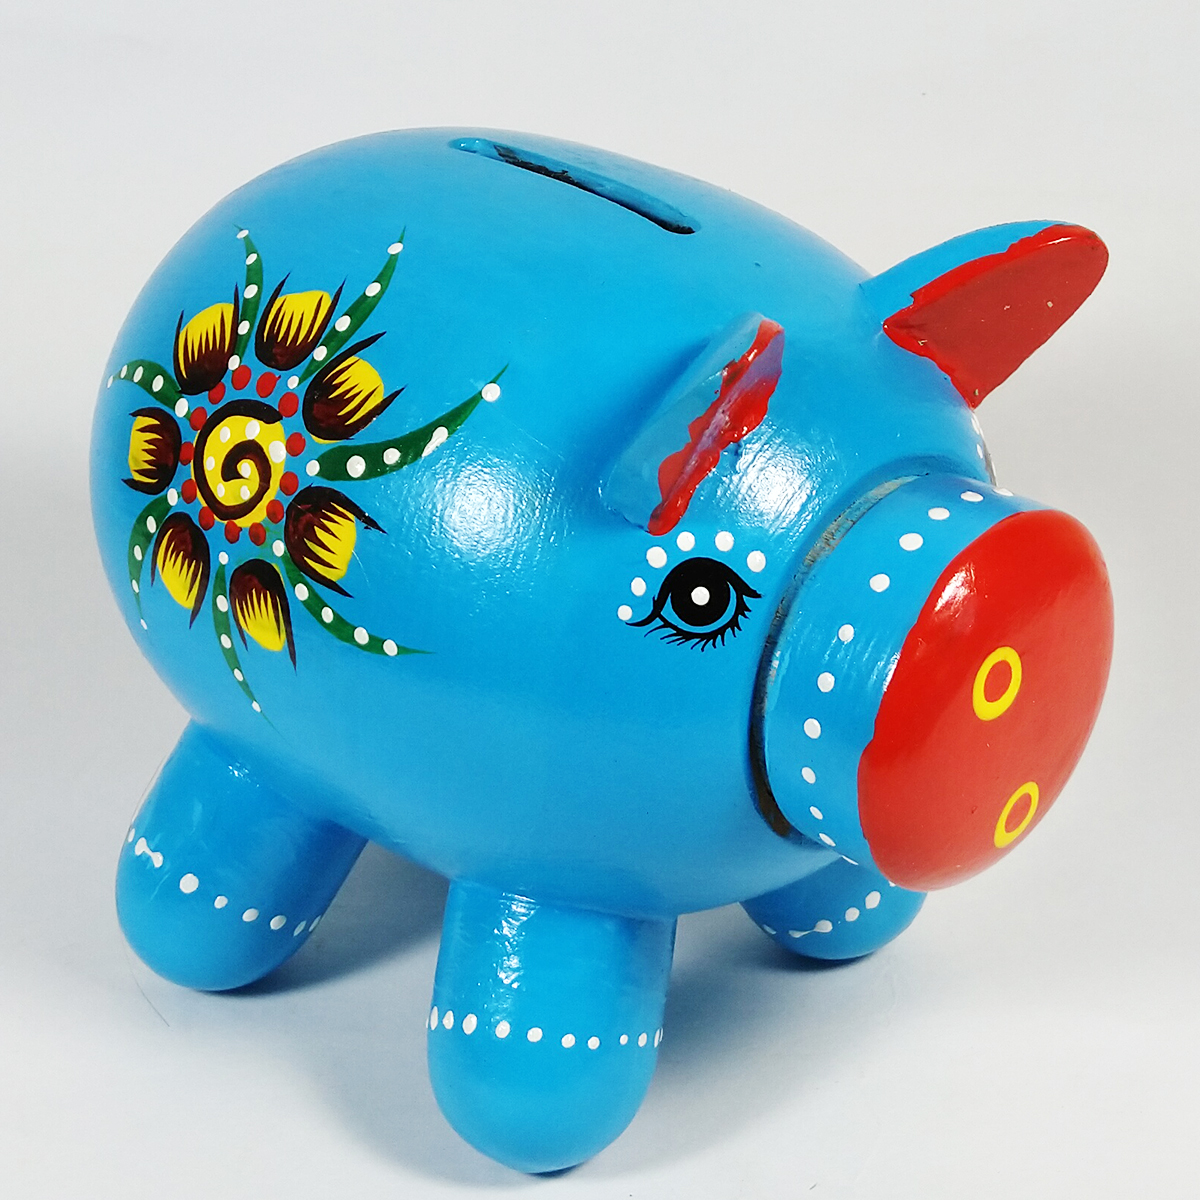 Buy Beautifully Designed And Handpainted Wooden Blue Piggy Bank For